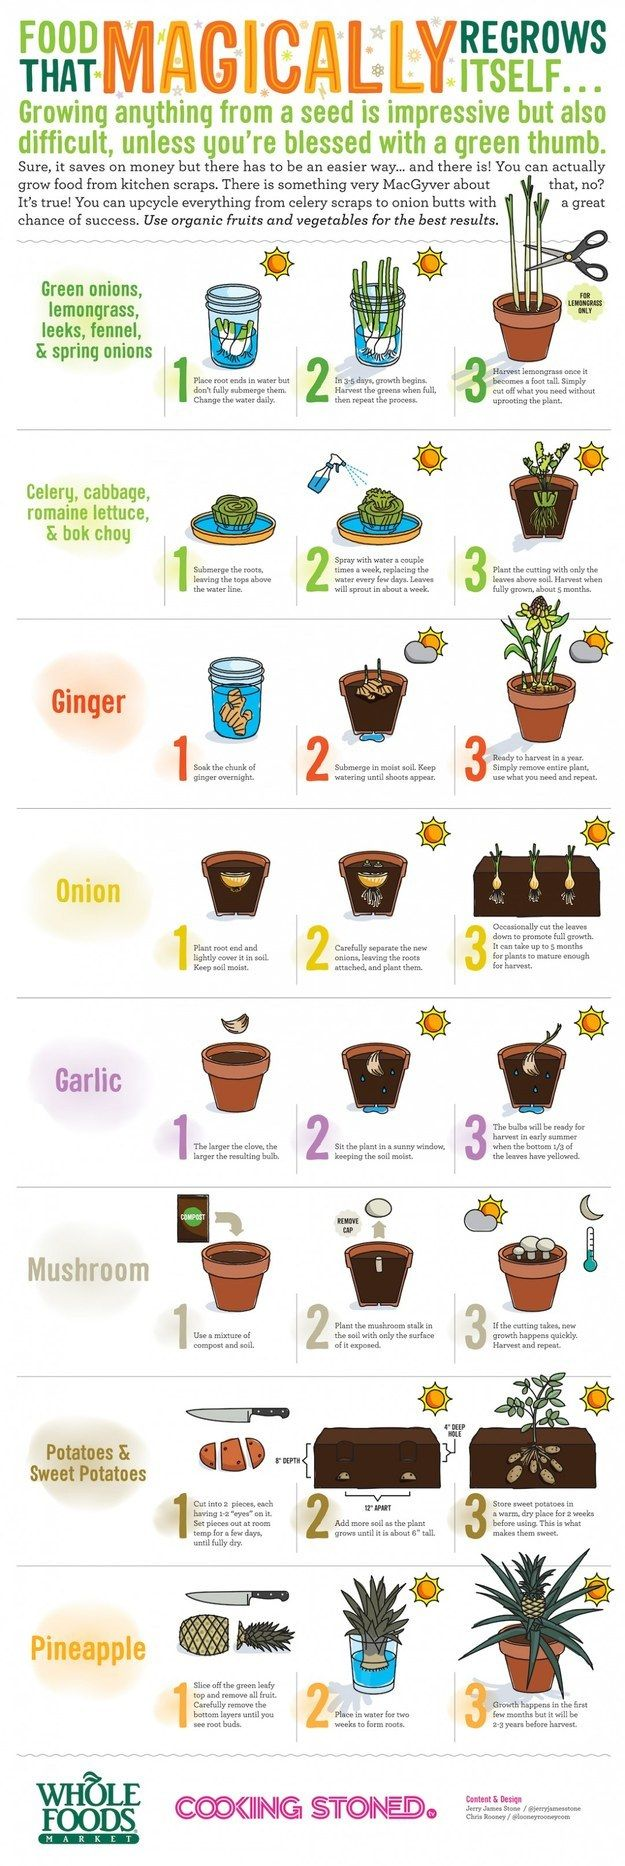 Save some money: Here's a list of food that ~magically~ regrows itself. | 23 Diagrams That Make Gardening So Much Easier